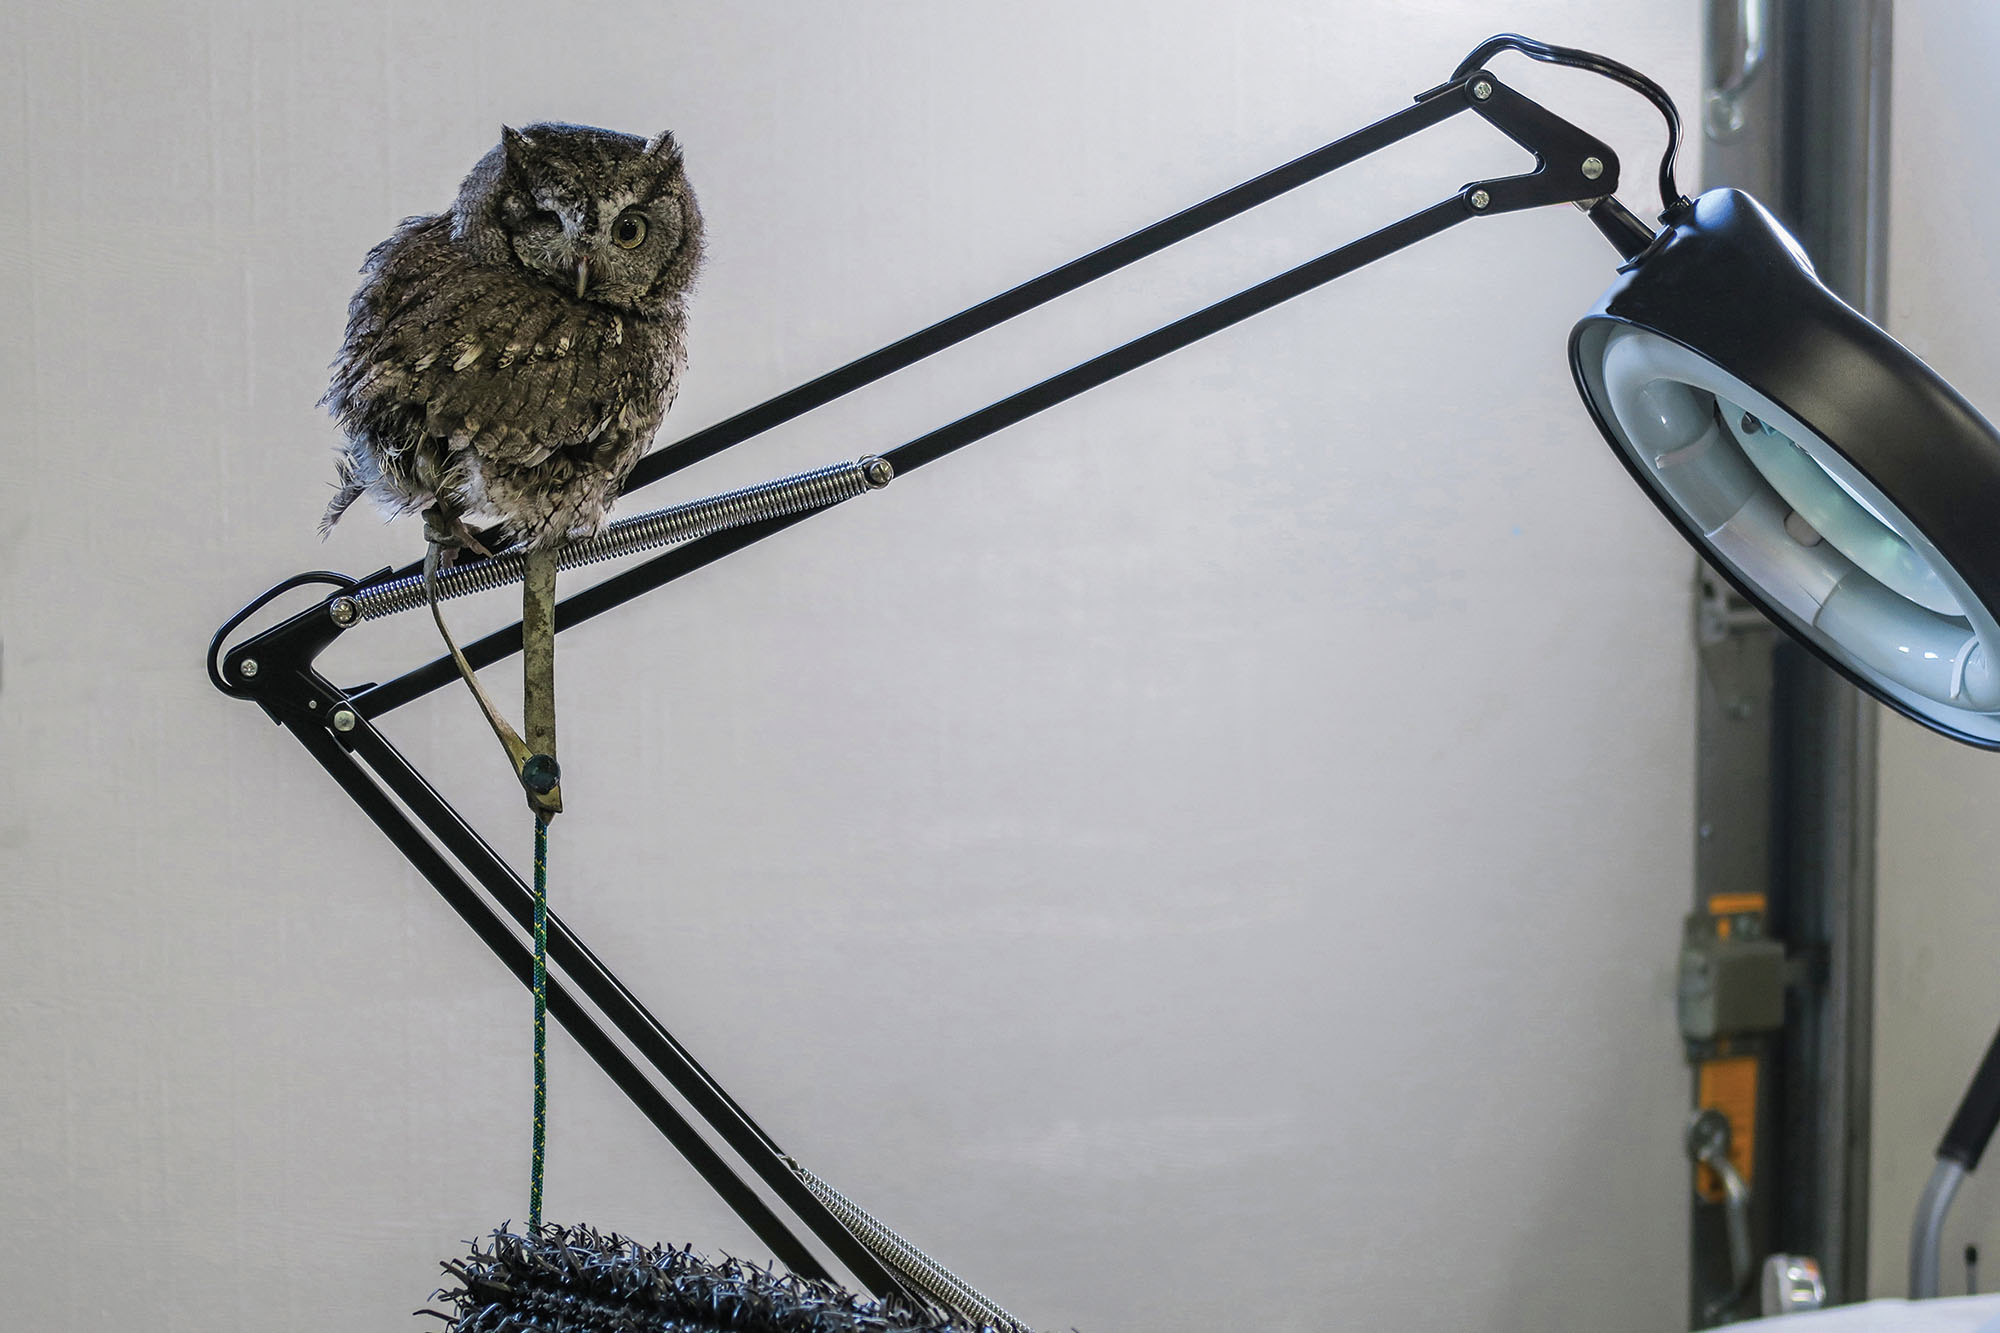 An Eastern Screech-Owl perches at a rehab facility in Iowa City, Iowa. The screech-owl lost an eye and cannot be released into the wild, so it now appears in education programs. Nikki Herbst/Shutterstock